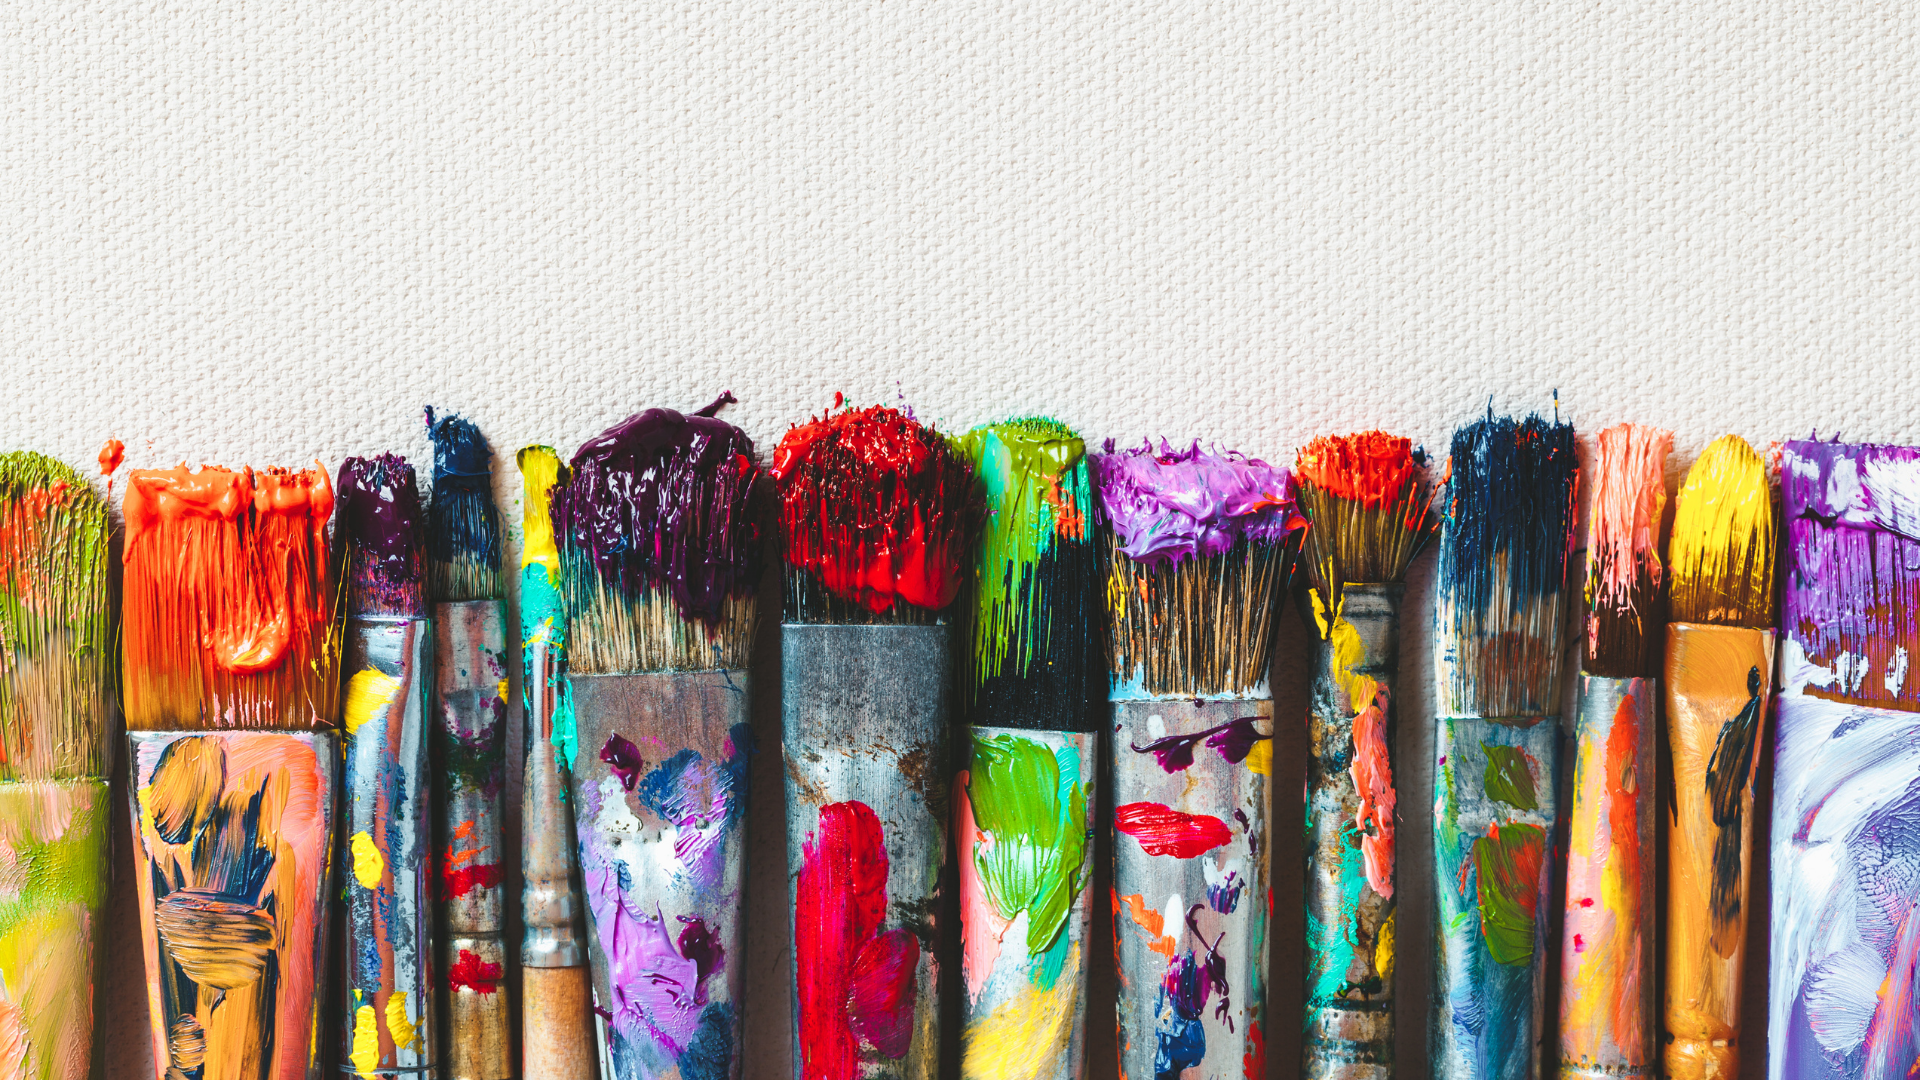 row-of-paint-brushes